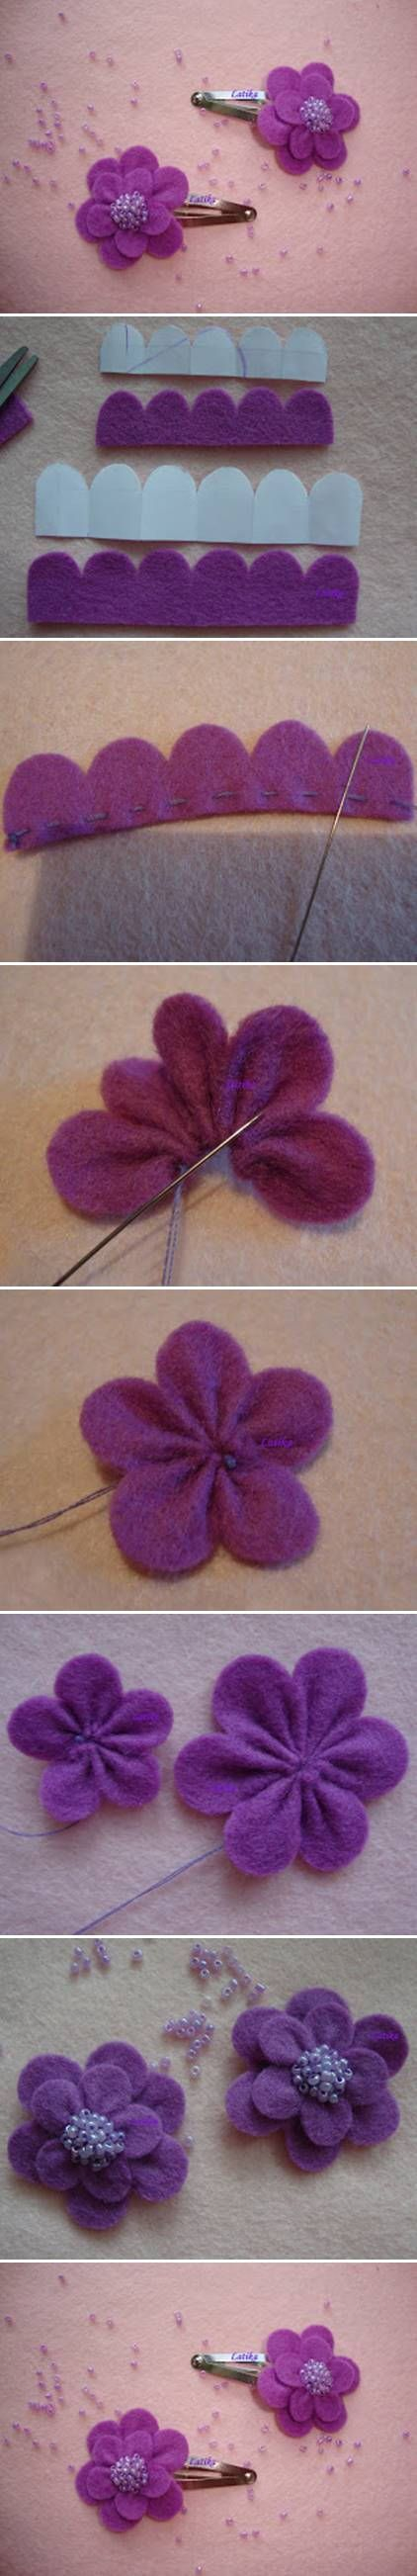 DIY Felt Morning Flower